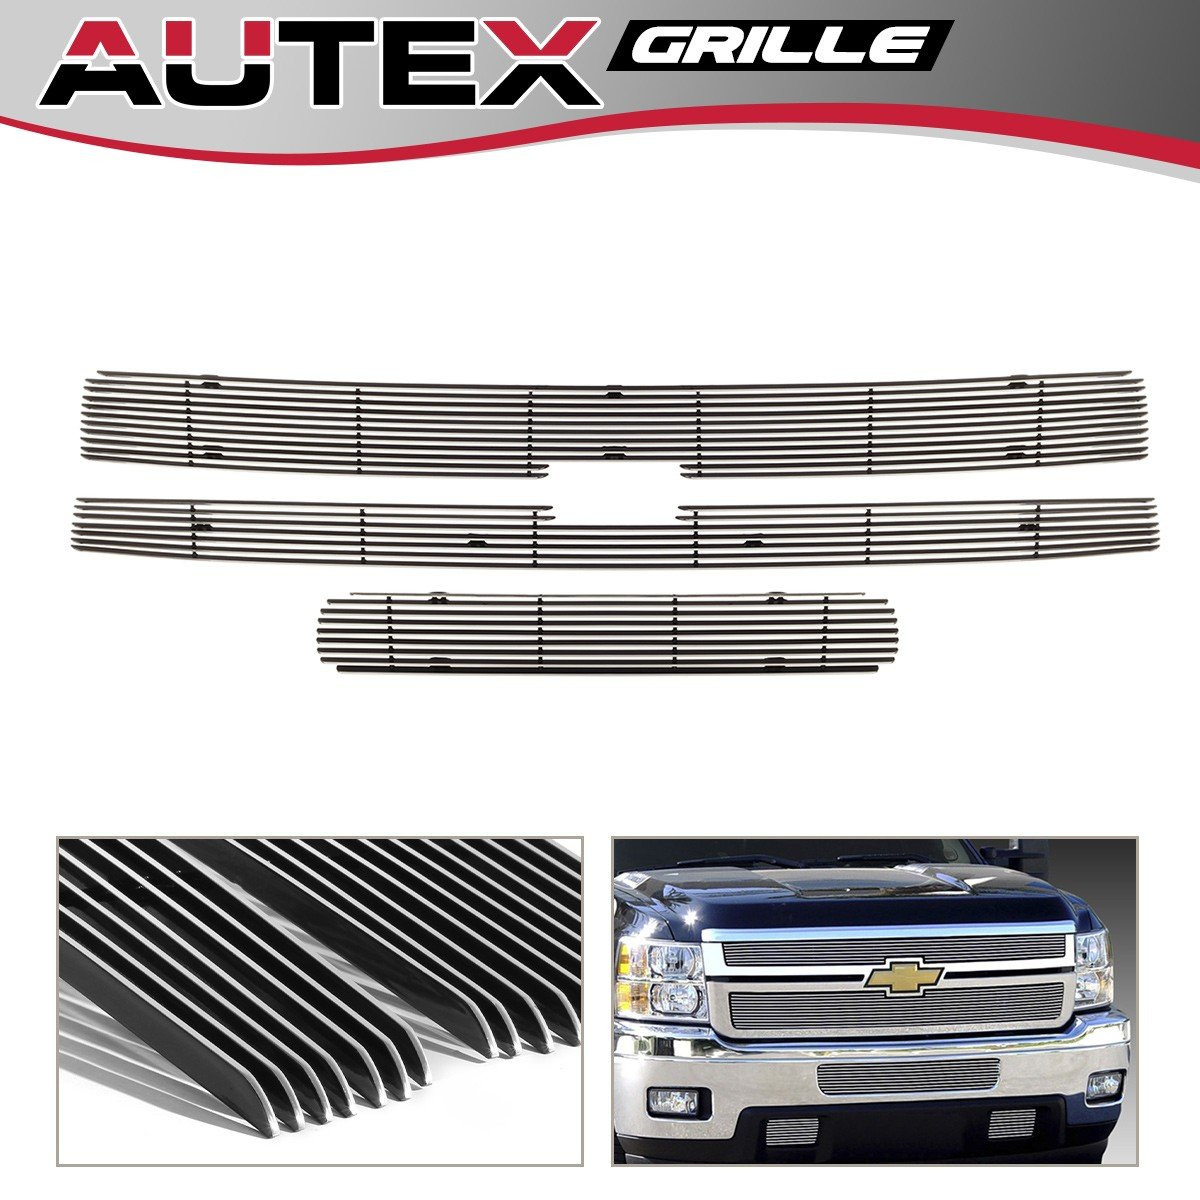 AUTEX for 2011 2012 2013 2014 Chevy Silverado 2500 HD/3500 HD Billet Grille Insert Combo C61031A Upper+Bumper Grill Chrome Aluminum